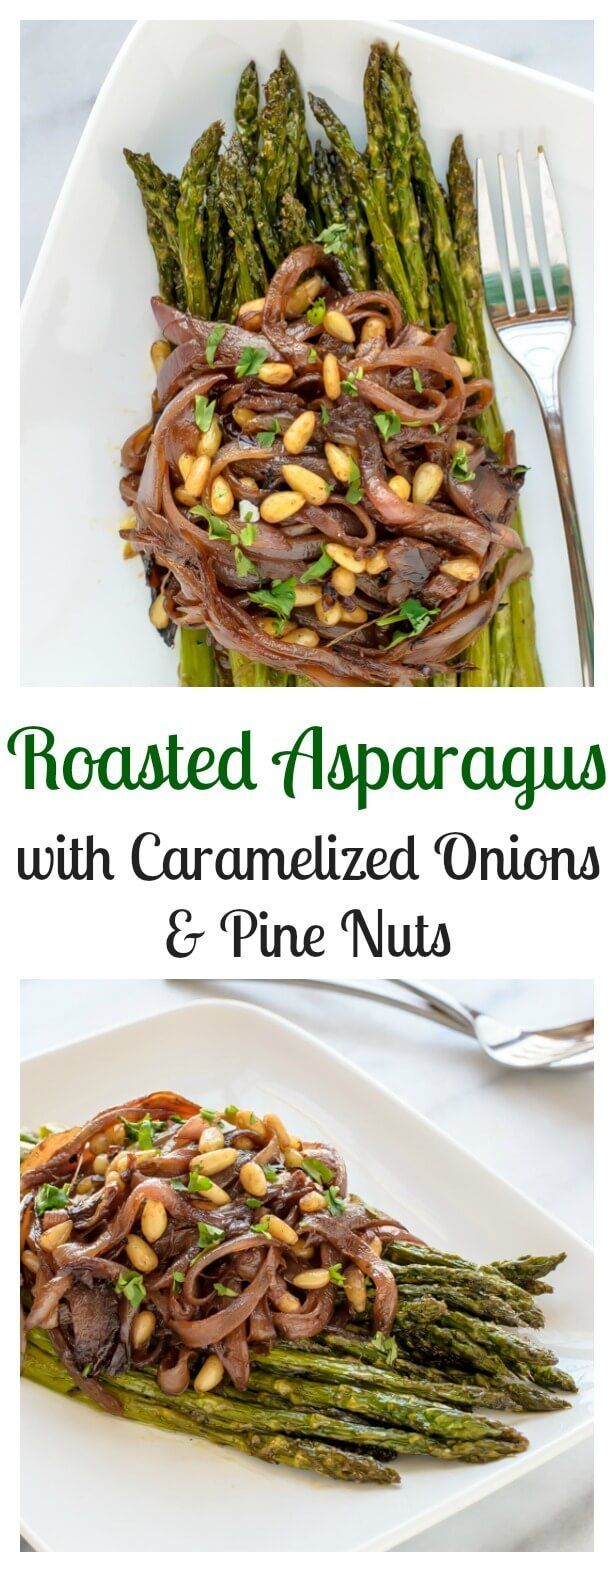 Photo of Perfect Easter recipe! Roasted Asparagus with Caramelized Onions and Pine Nuts. …